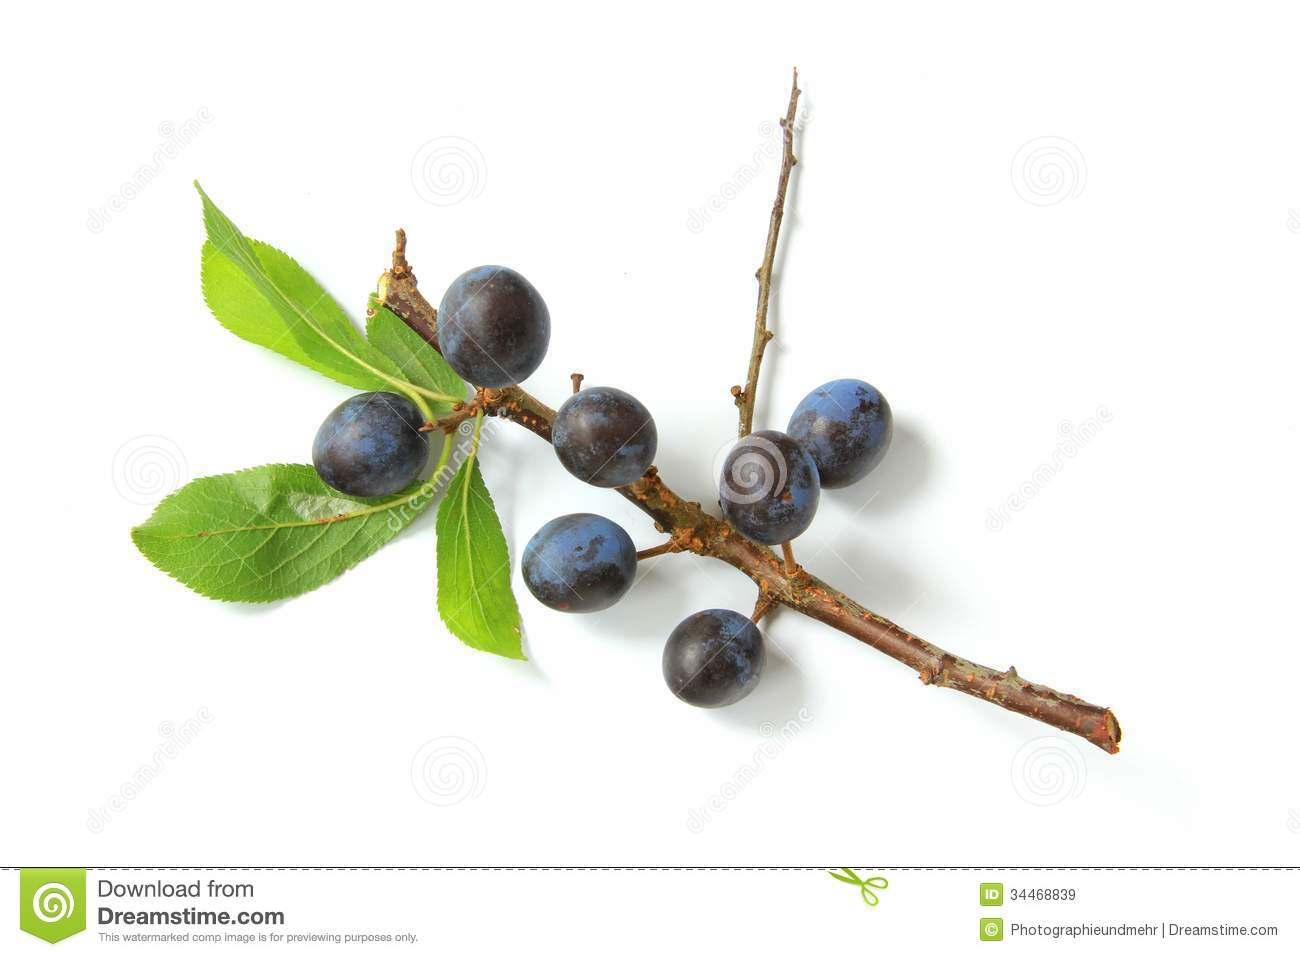 Sloes.